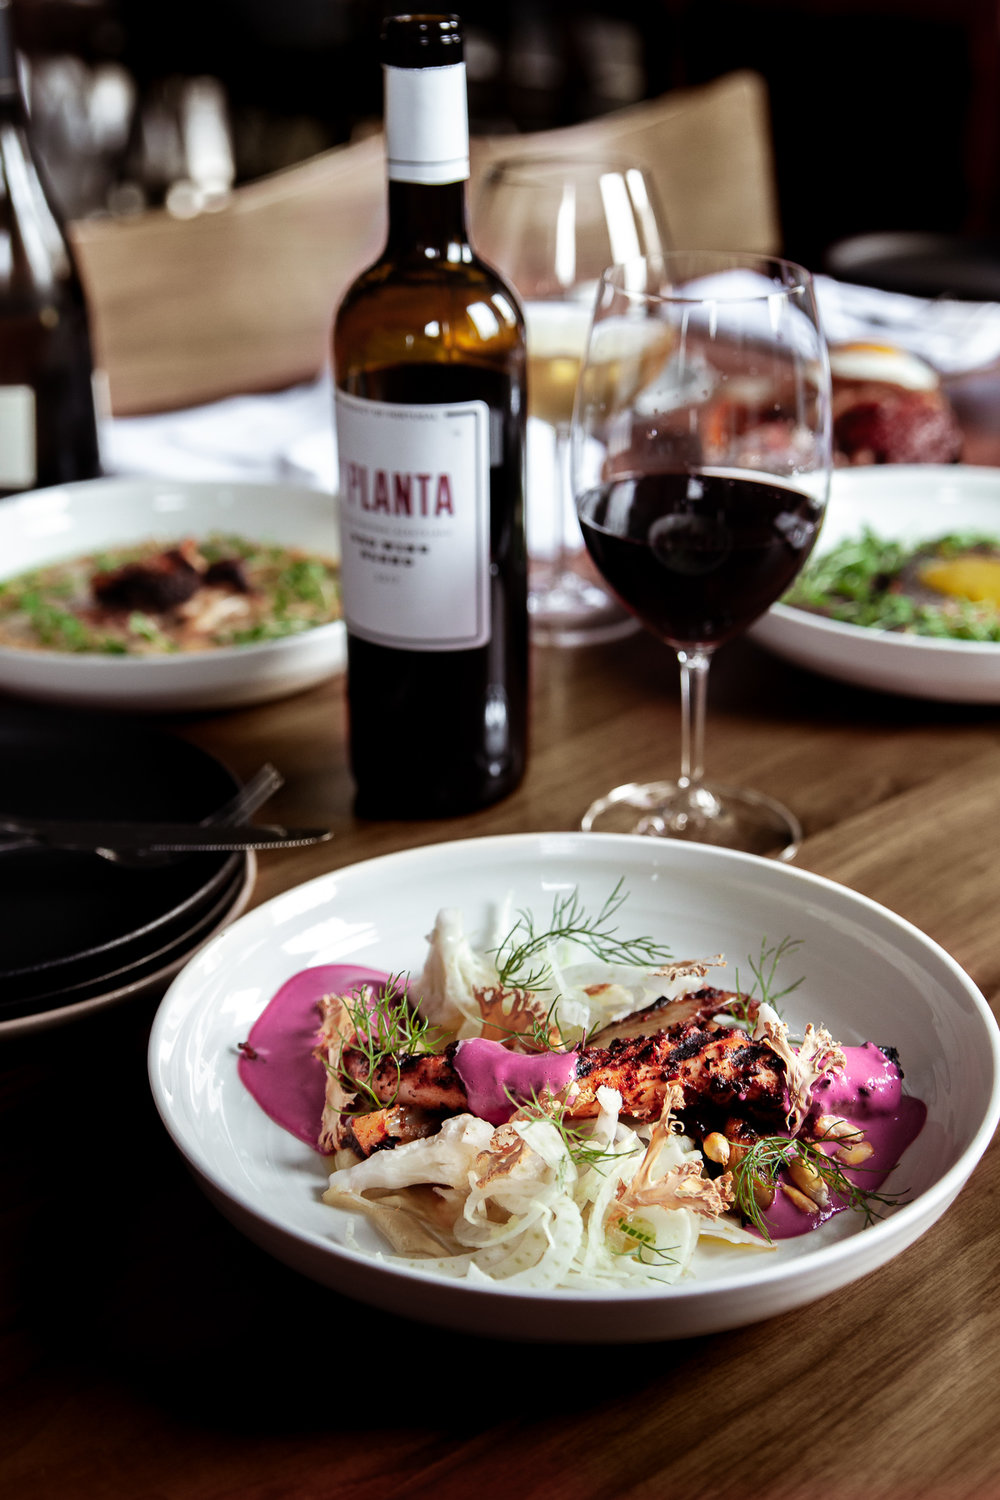 Table scape of Food and wine at Los Balcones, Studio city